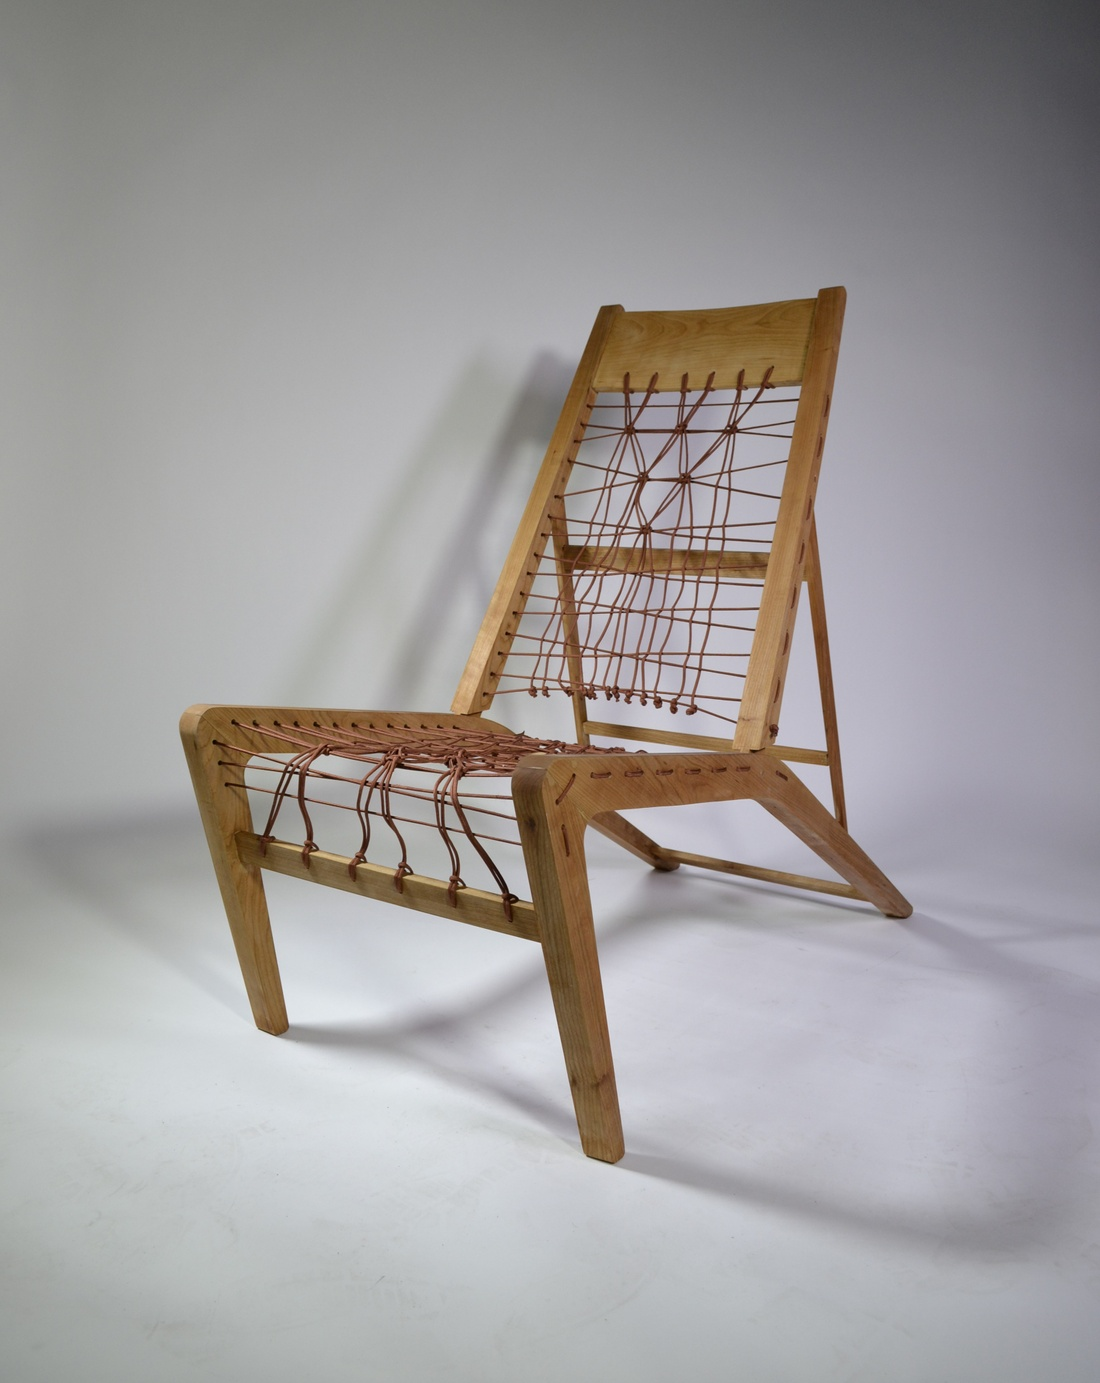 Chair by Jennifer Fontenot